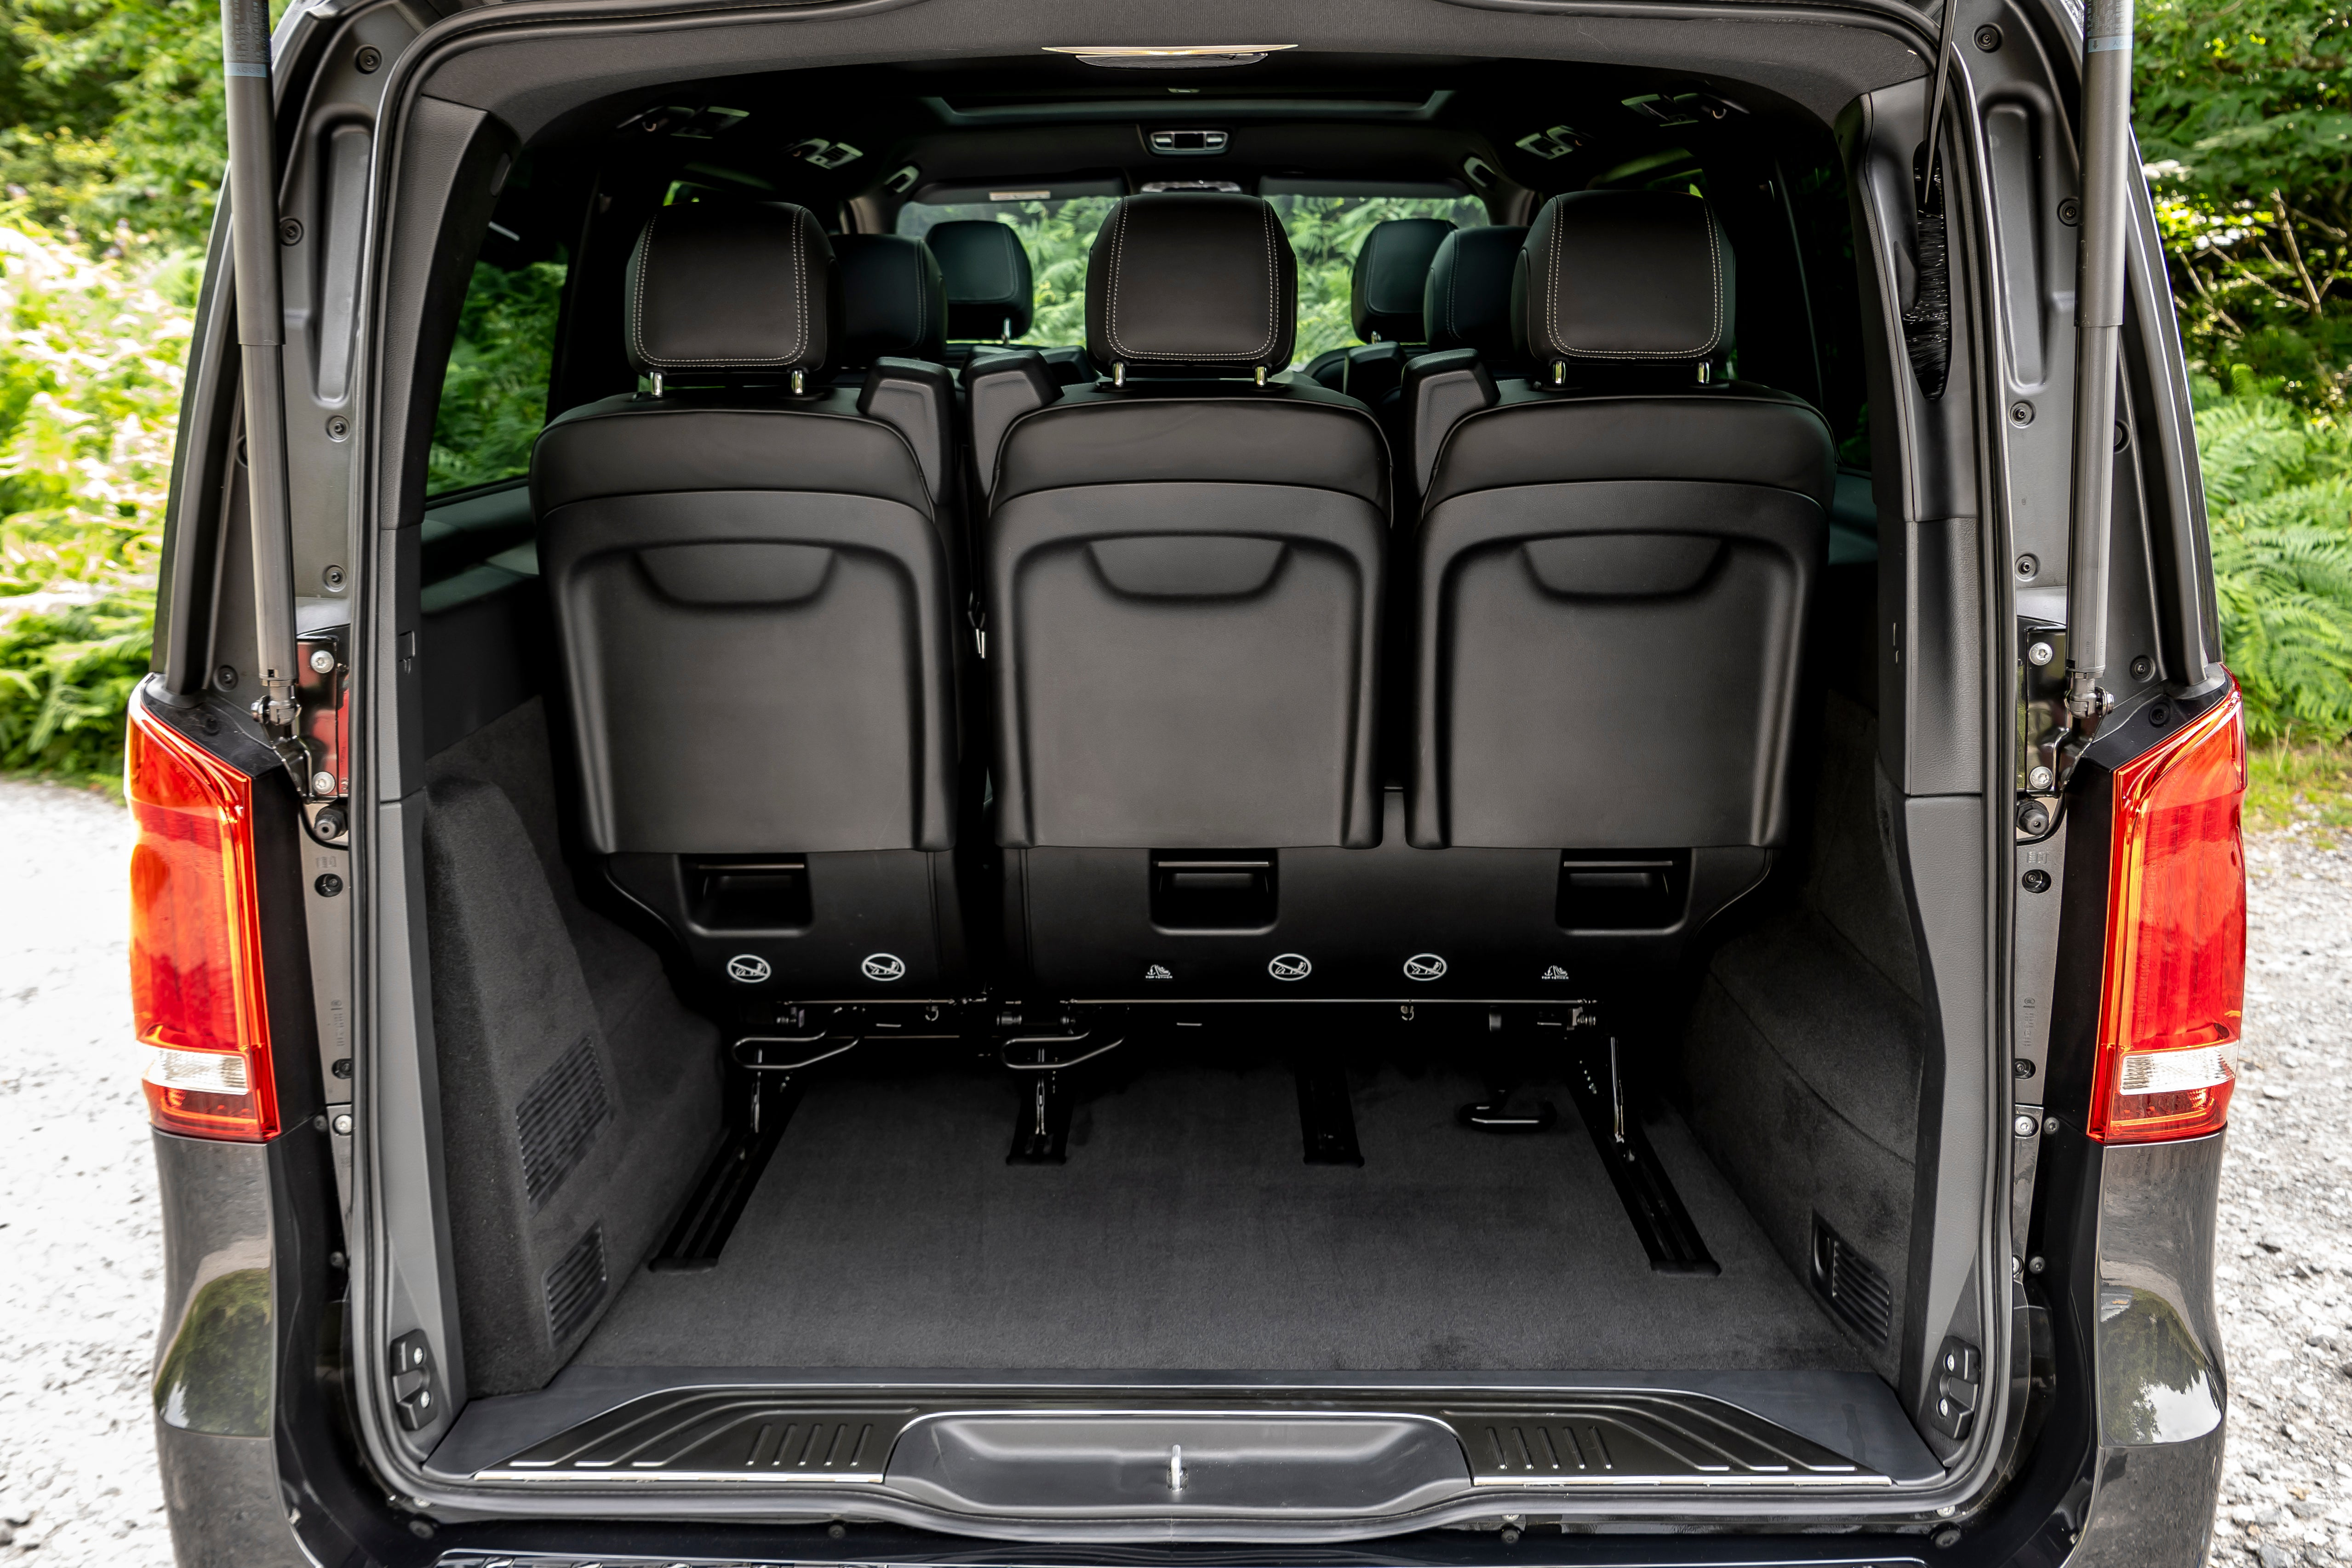 Mercedes V-Class seating